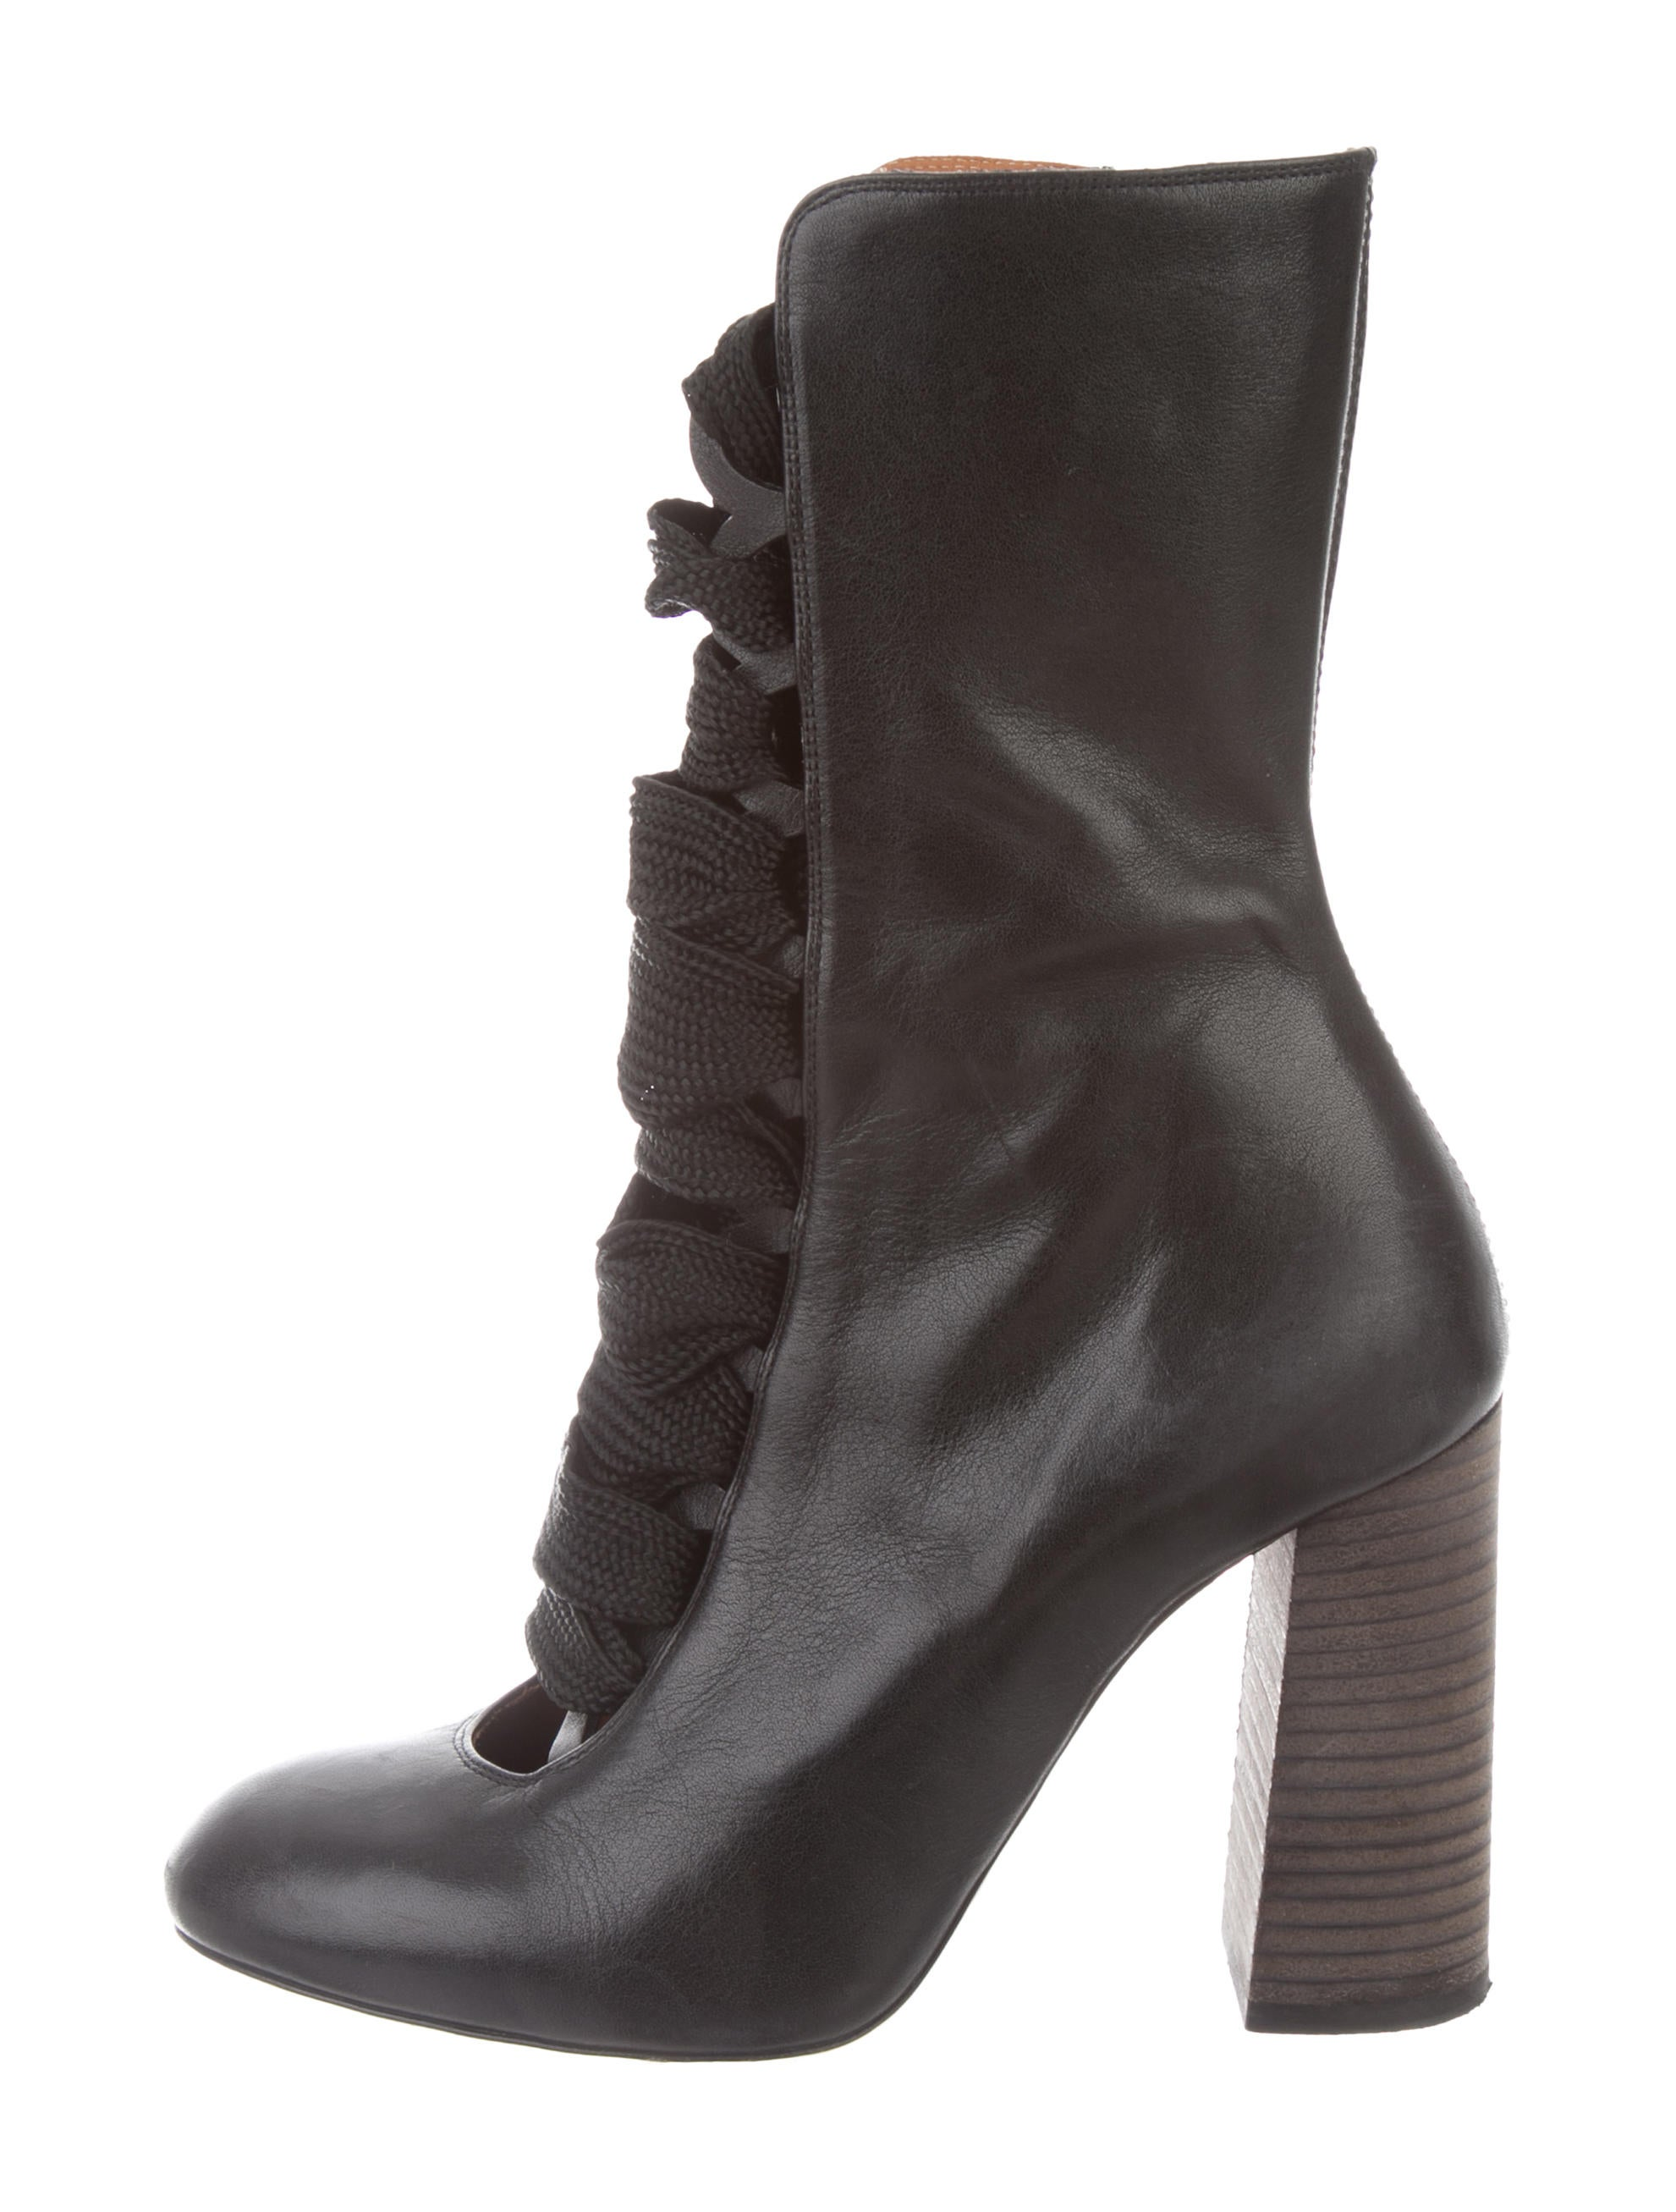 Leather Lace Up Boots by Chloé